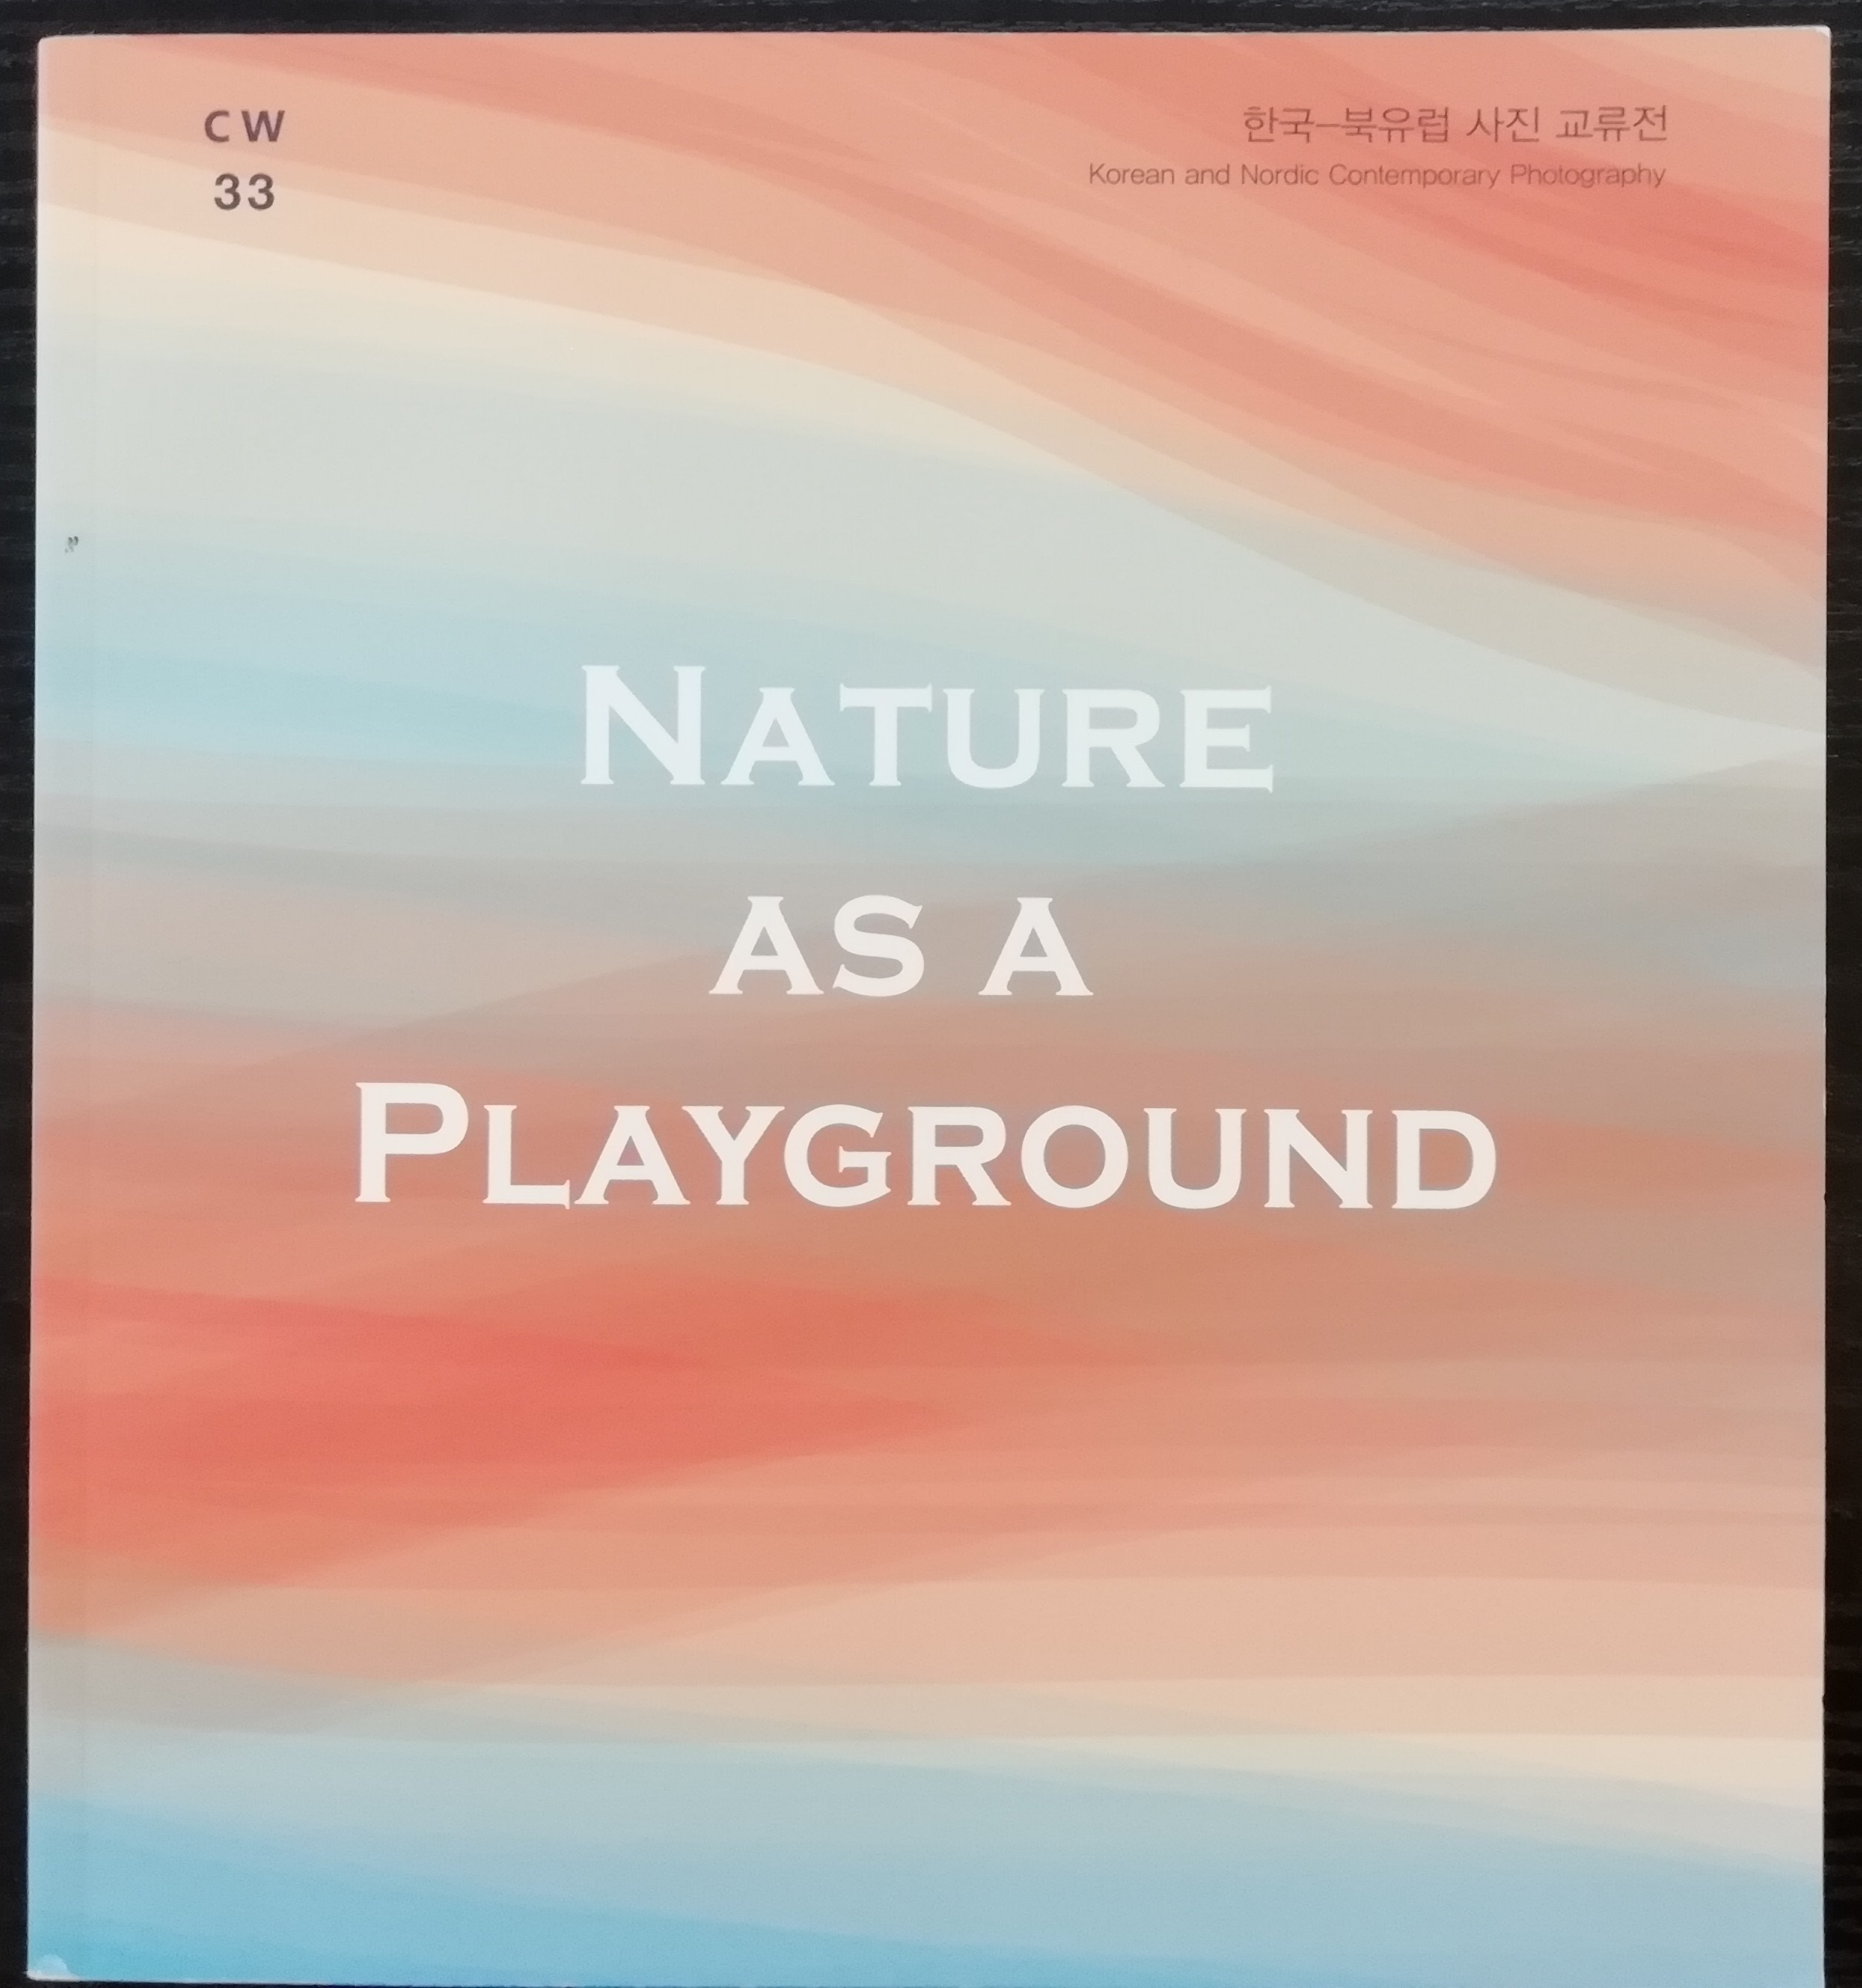 Katalog til Nature as a Playground